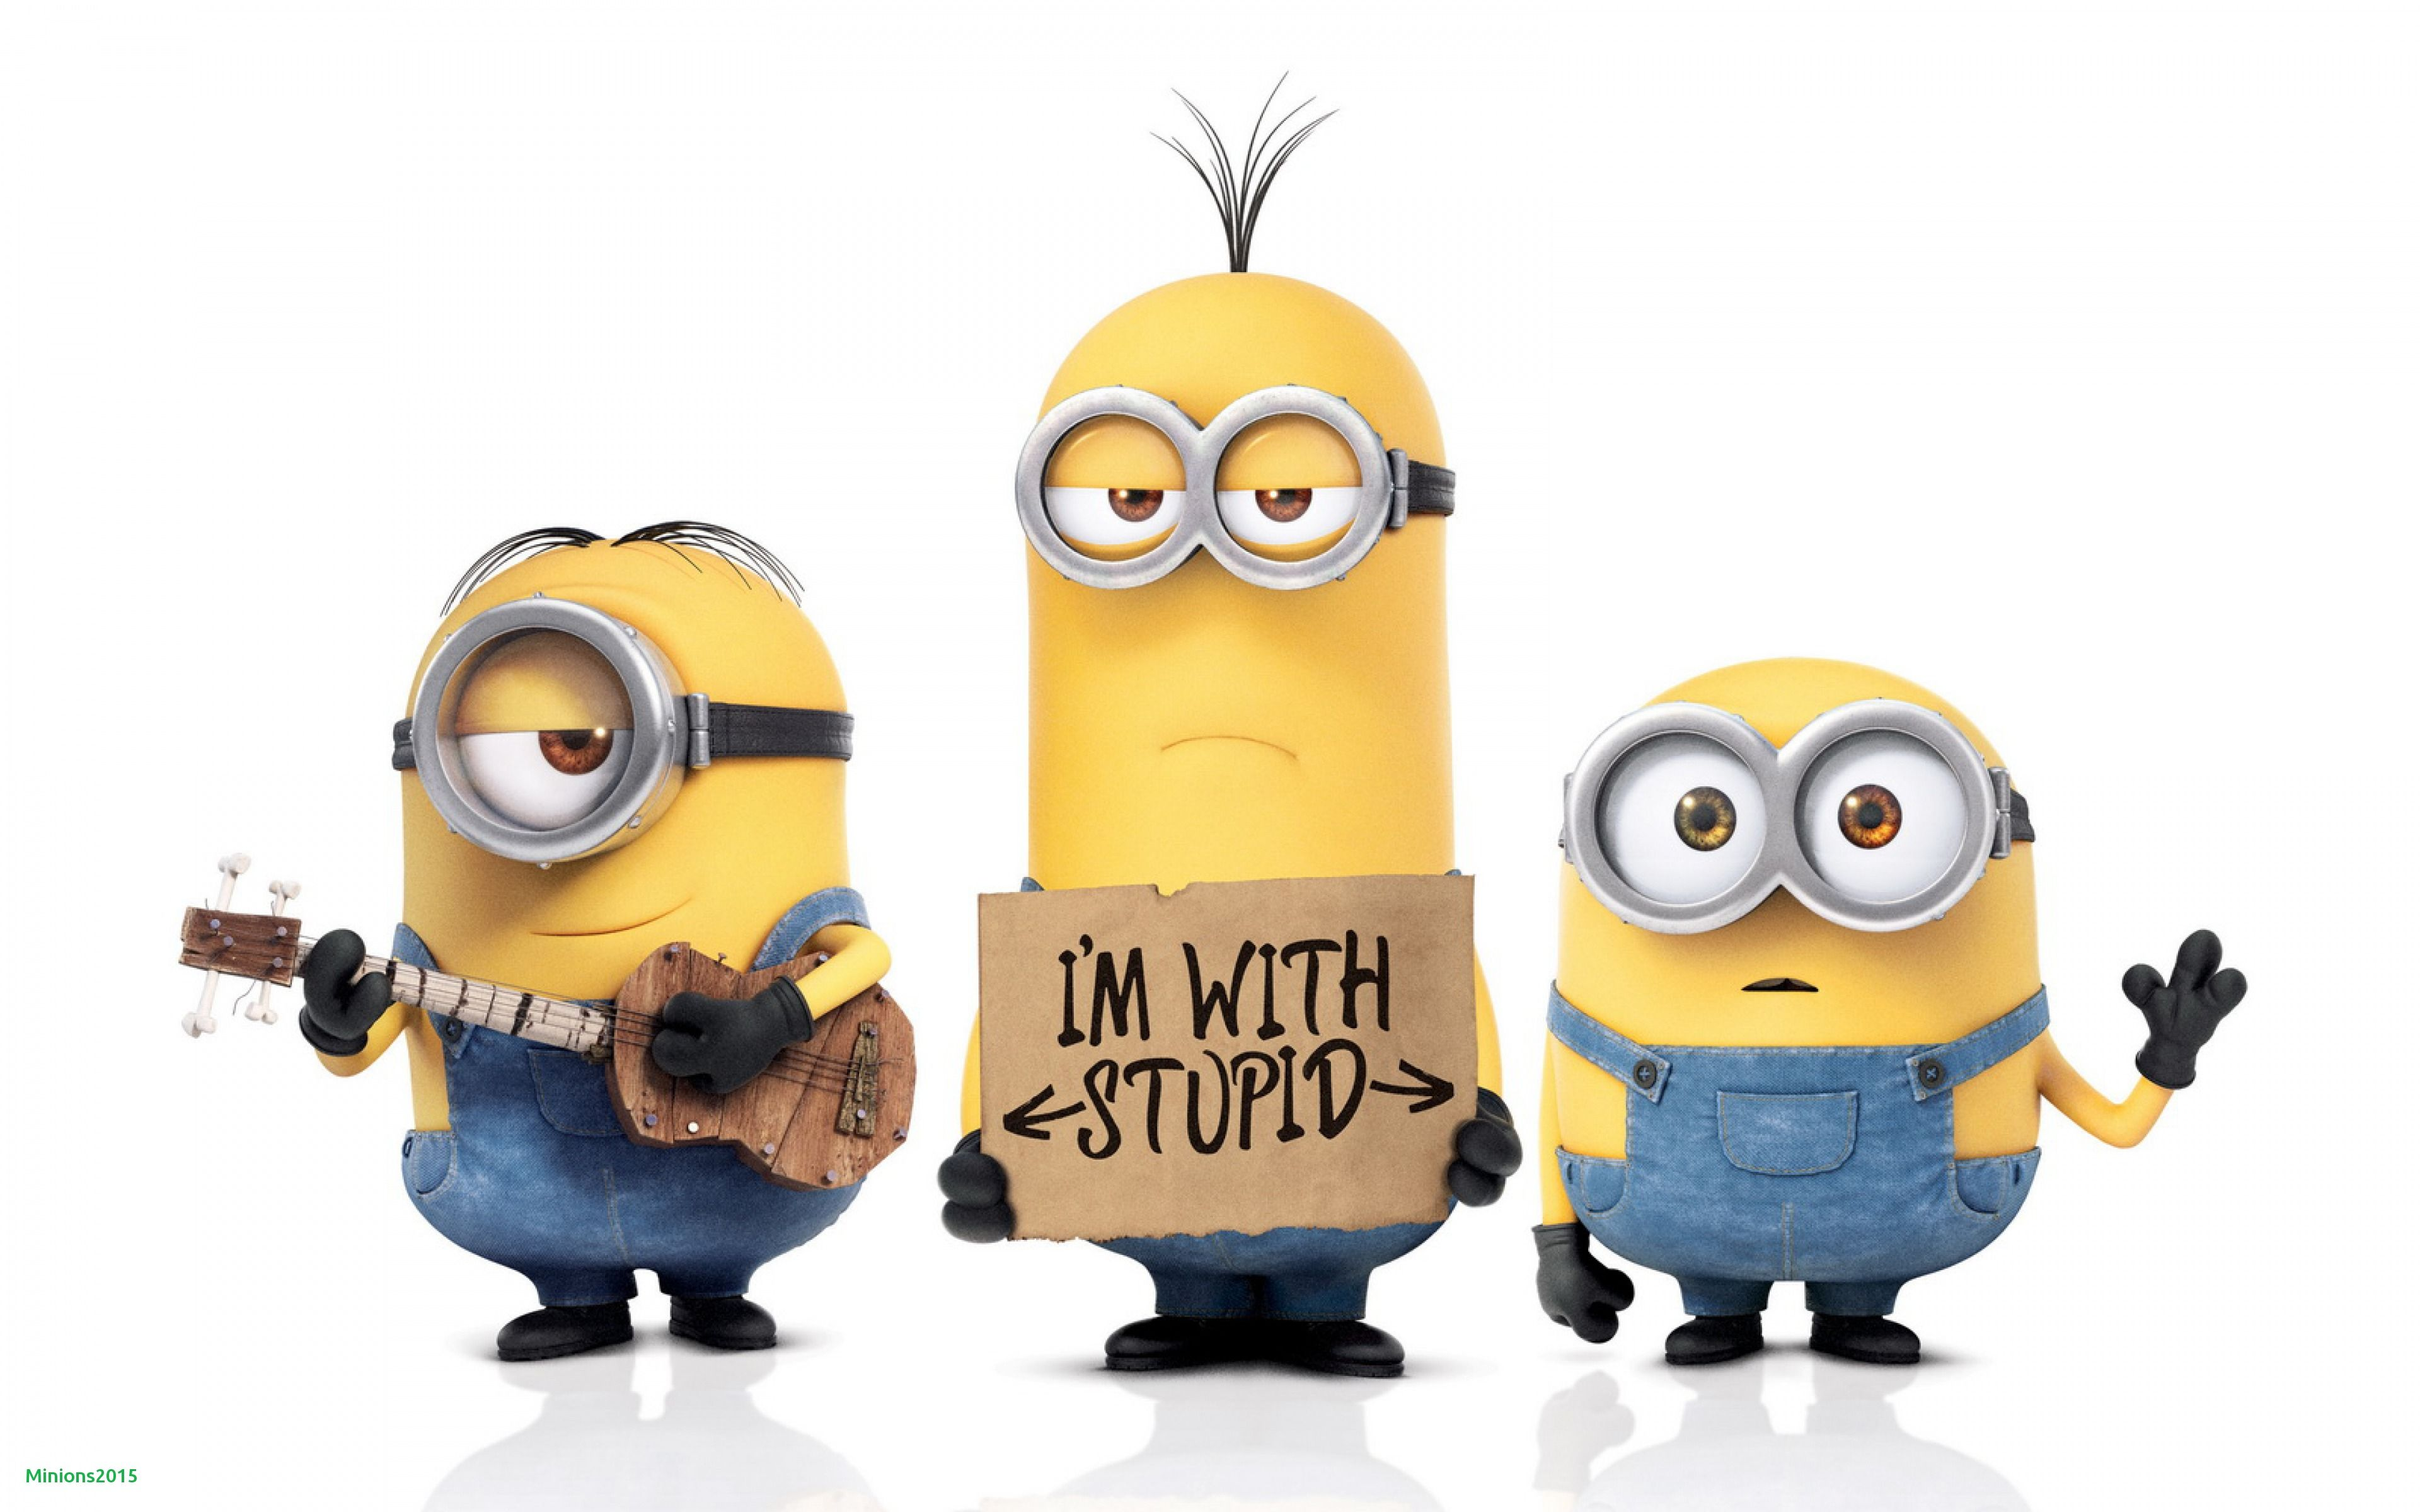 Funny Minions Wallpapers   Top Funny Minions Backgrounds 3840x2400